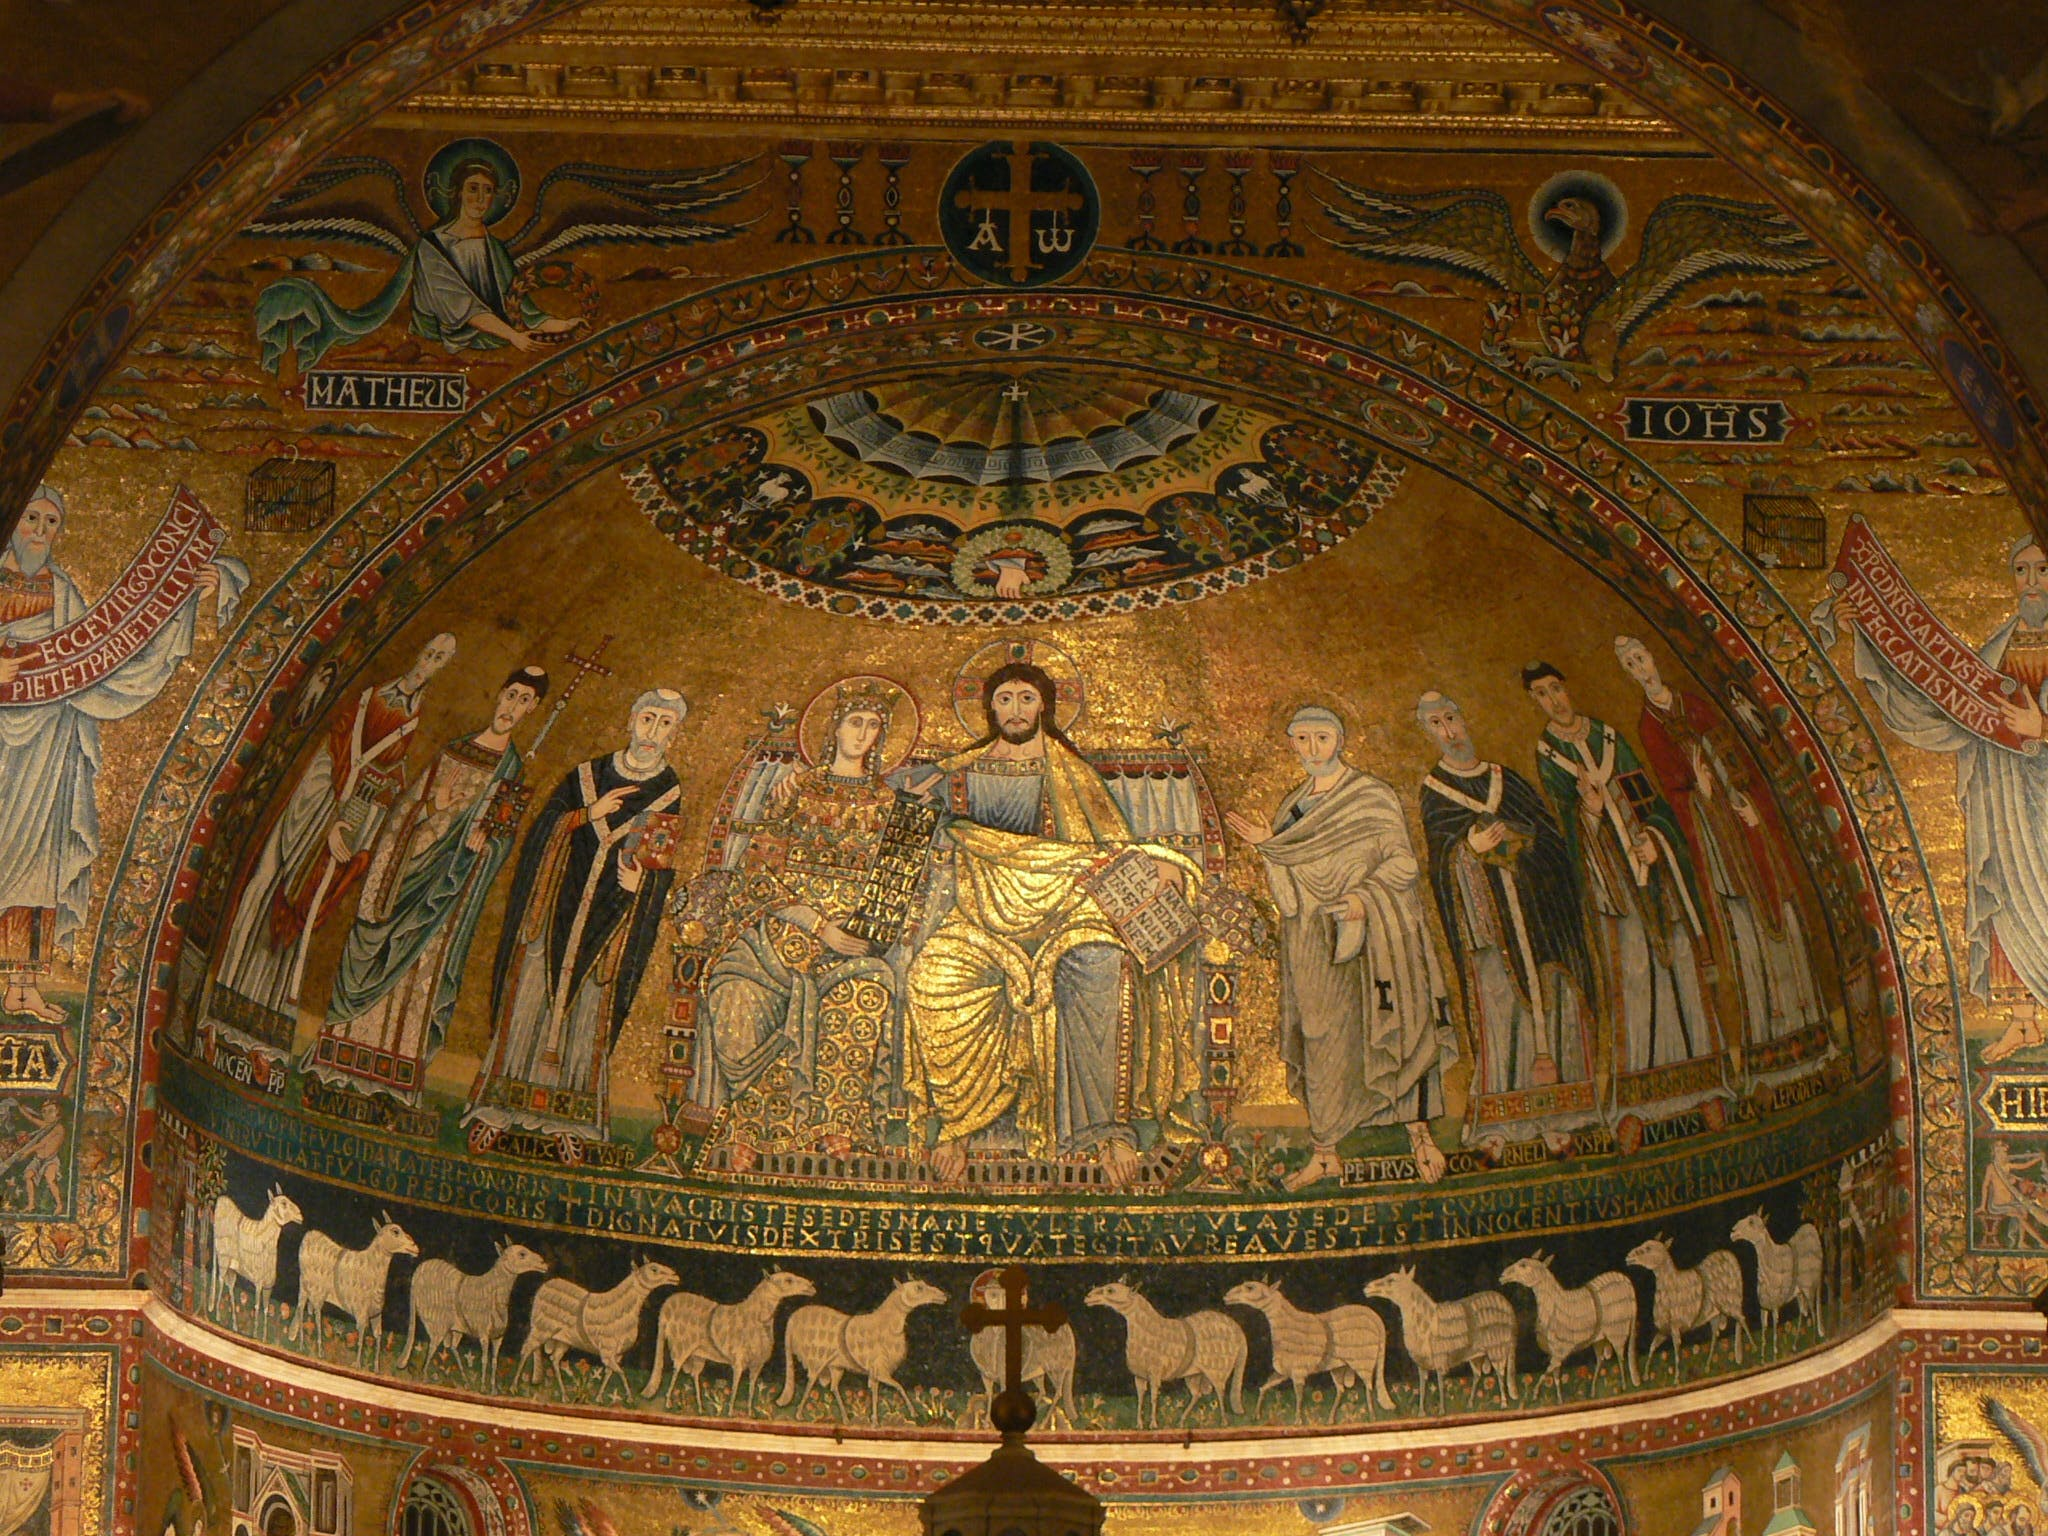 Best Tours in Rome - Jewish ghetto and trastevere - 2